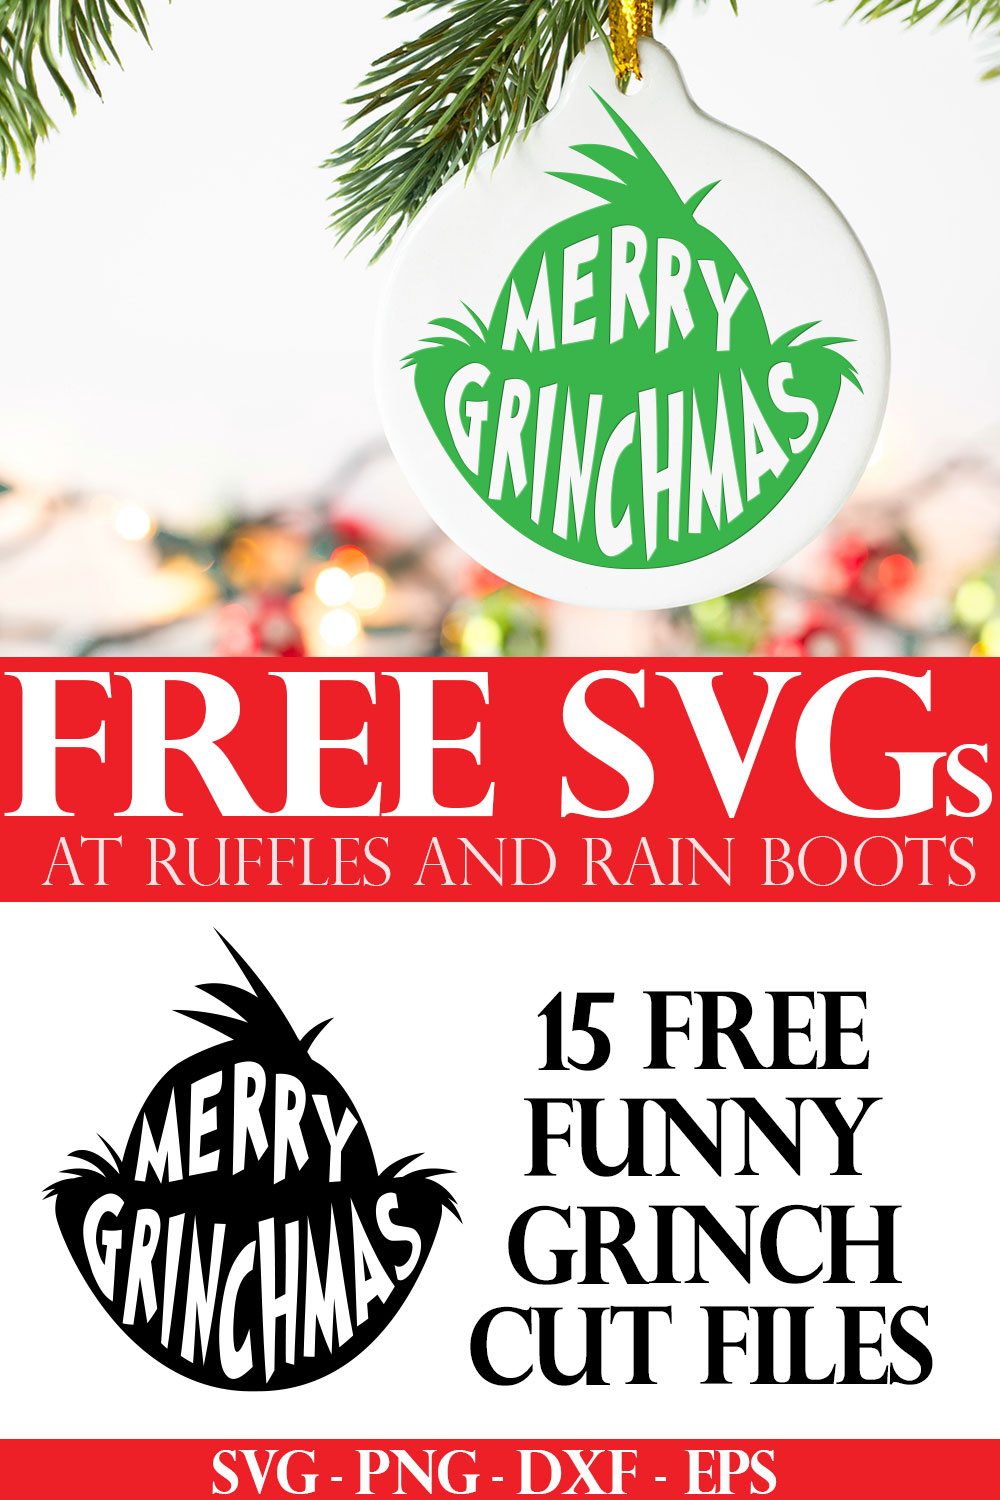 fun holiday ornament made with free grinch head svg for merry Grinchmas with text which reads free svgs from Ruffles and Rain Boots